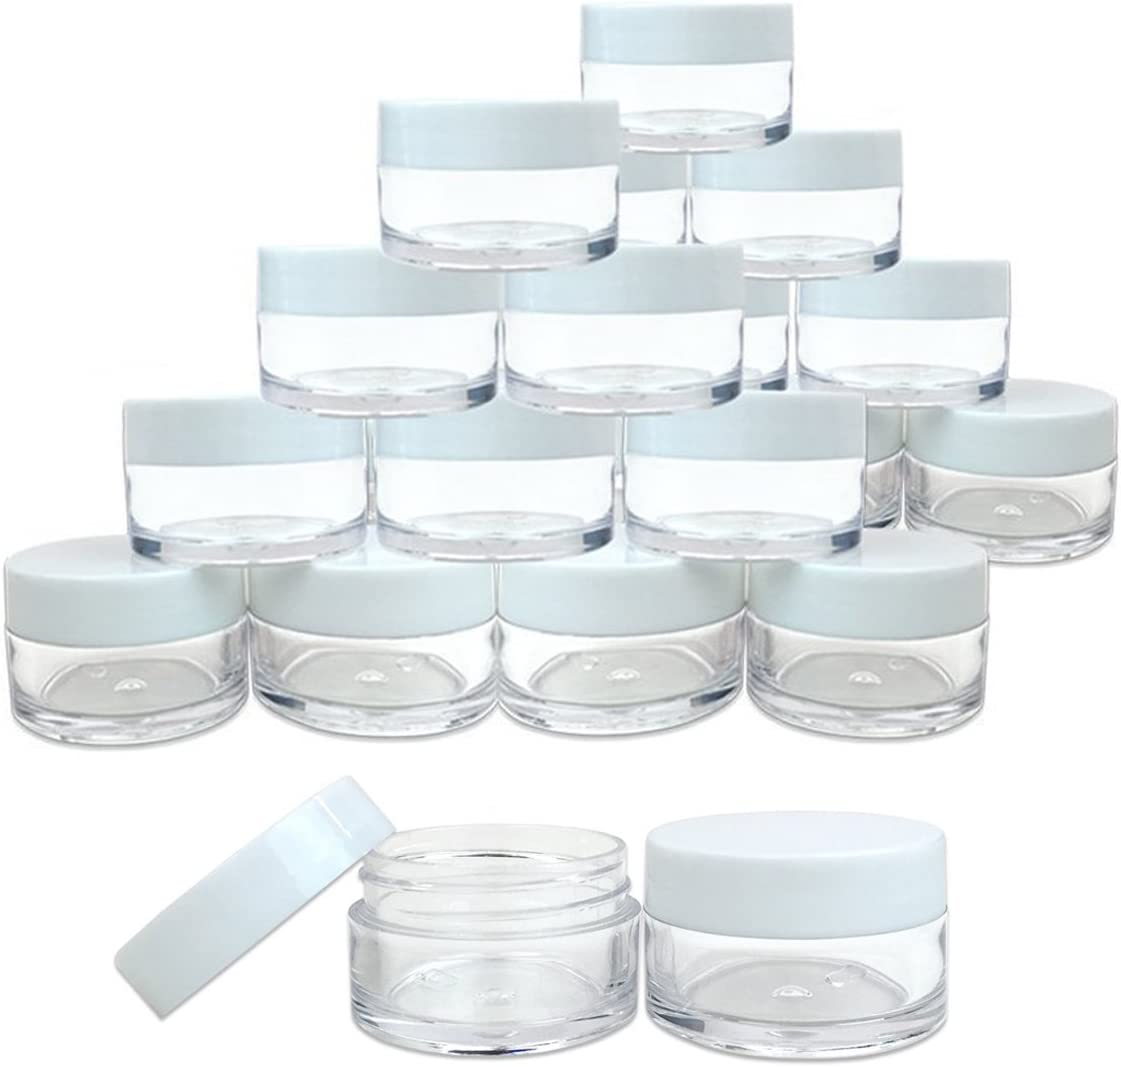 Beauticom 36 Pieces 20G/20ML Round Clear Jars with WHITE Lids for Lotion, Creams, Toners, Lip Balms, Makeup Samples - BPA Free